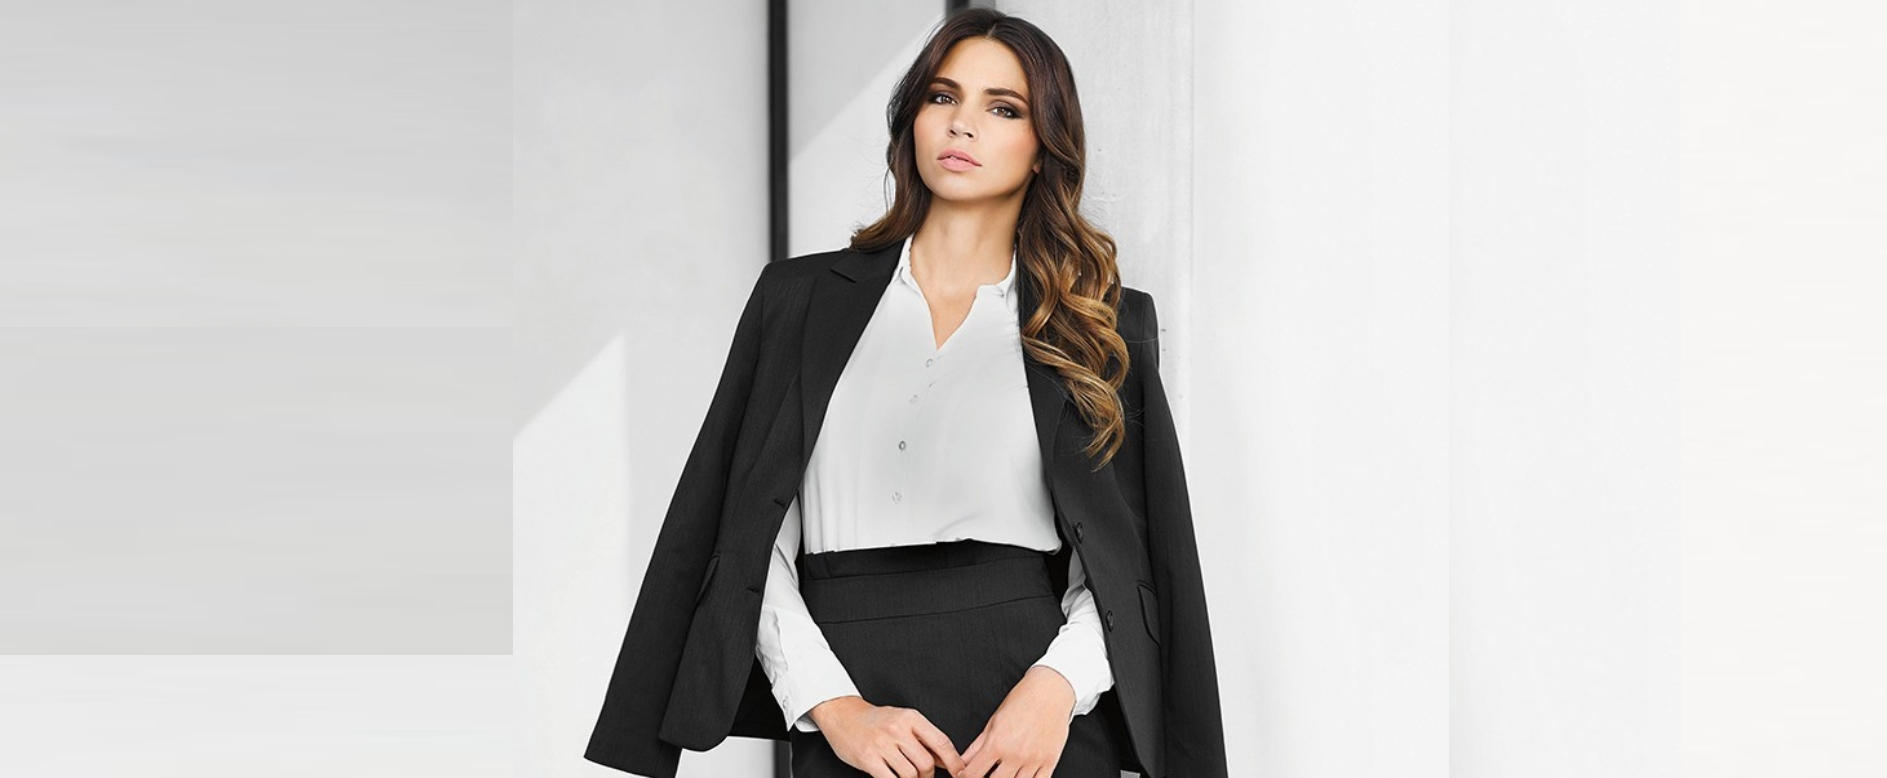 LXP - Lifexpe - woman sexy corporate uniform The Roles Served by Corporate Uniforms